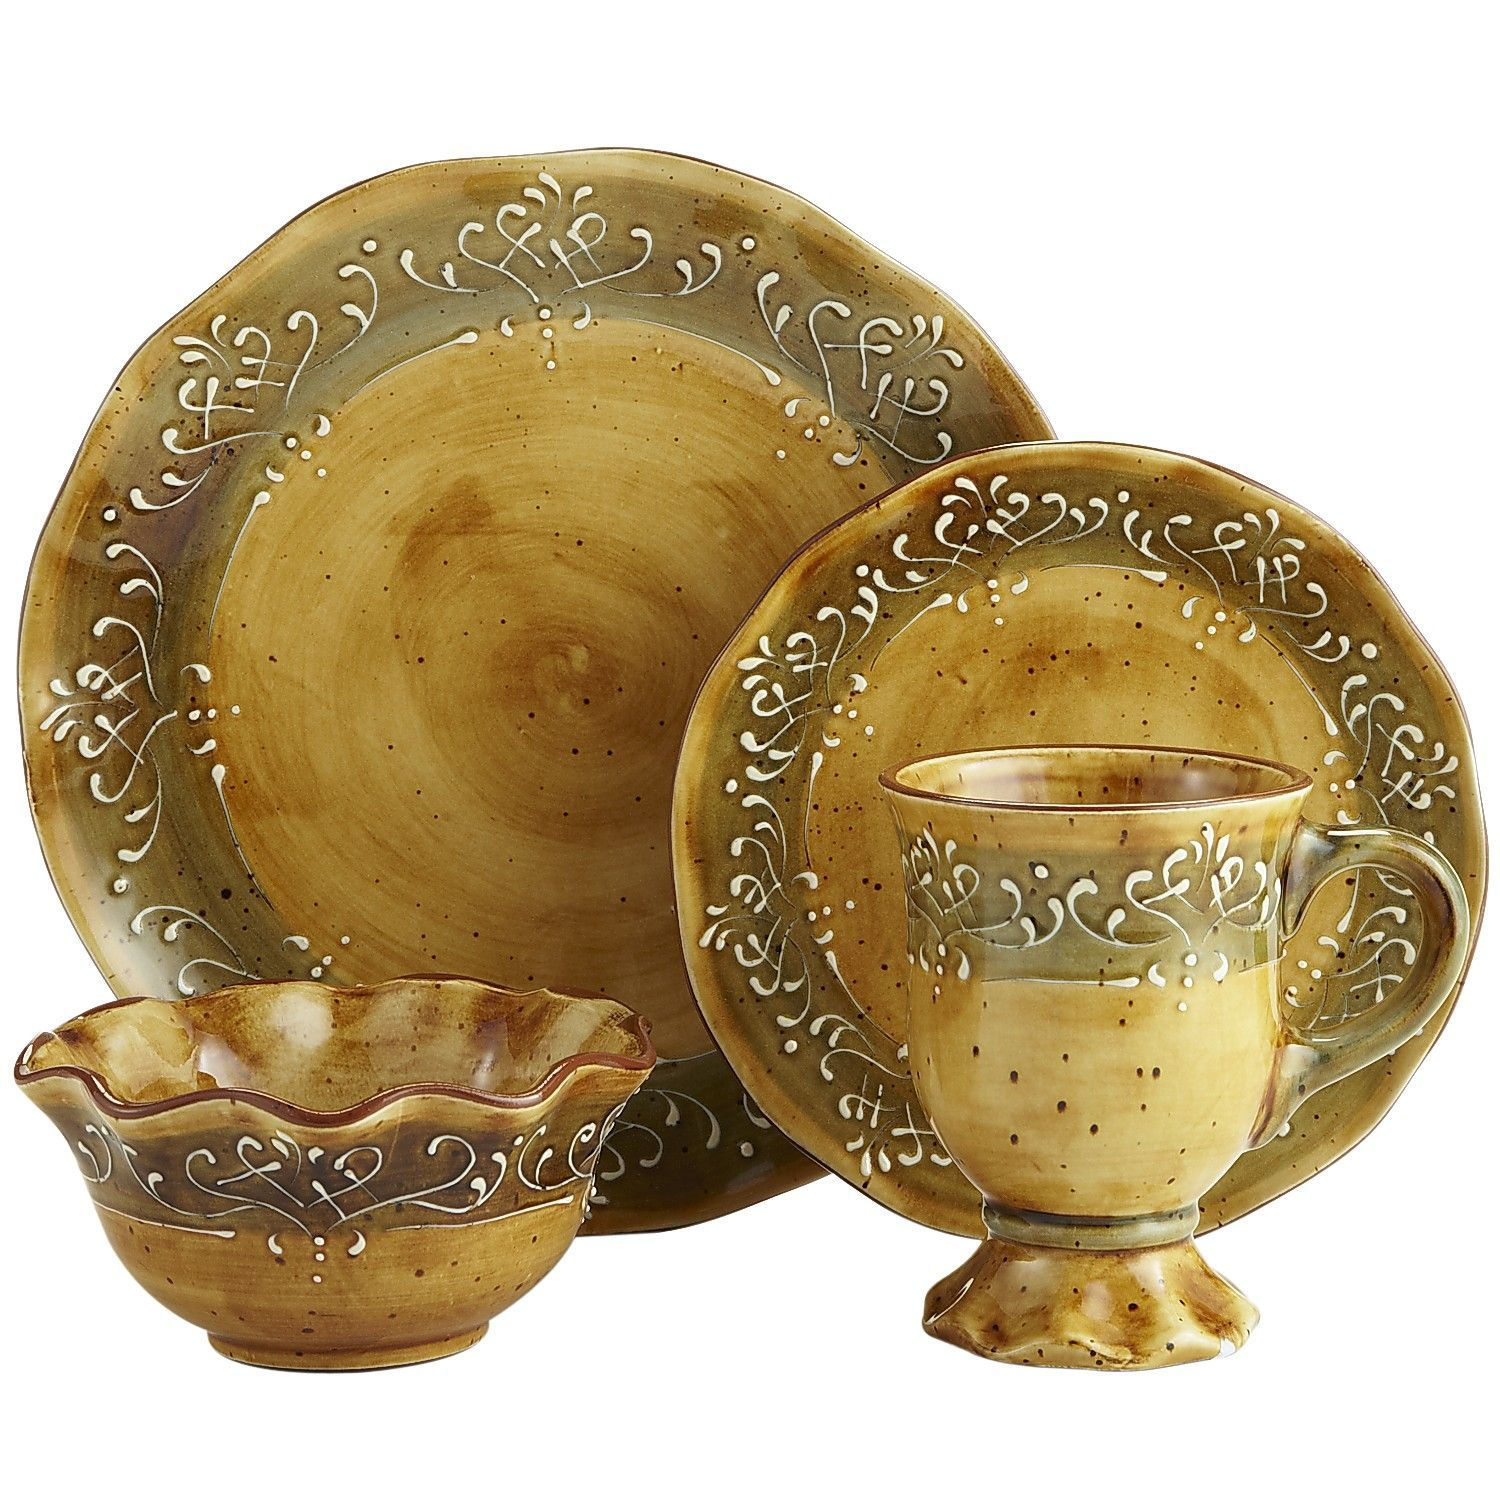 Pier 1 Maroma Dinnerware - Absolutely Beautiful!!! | For the Home ...